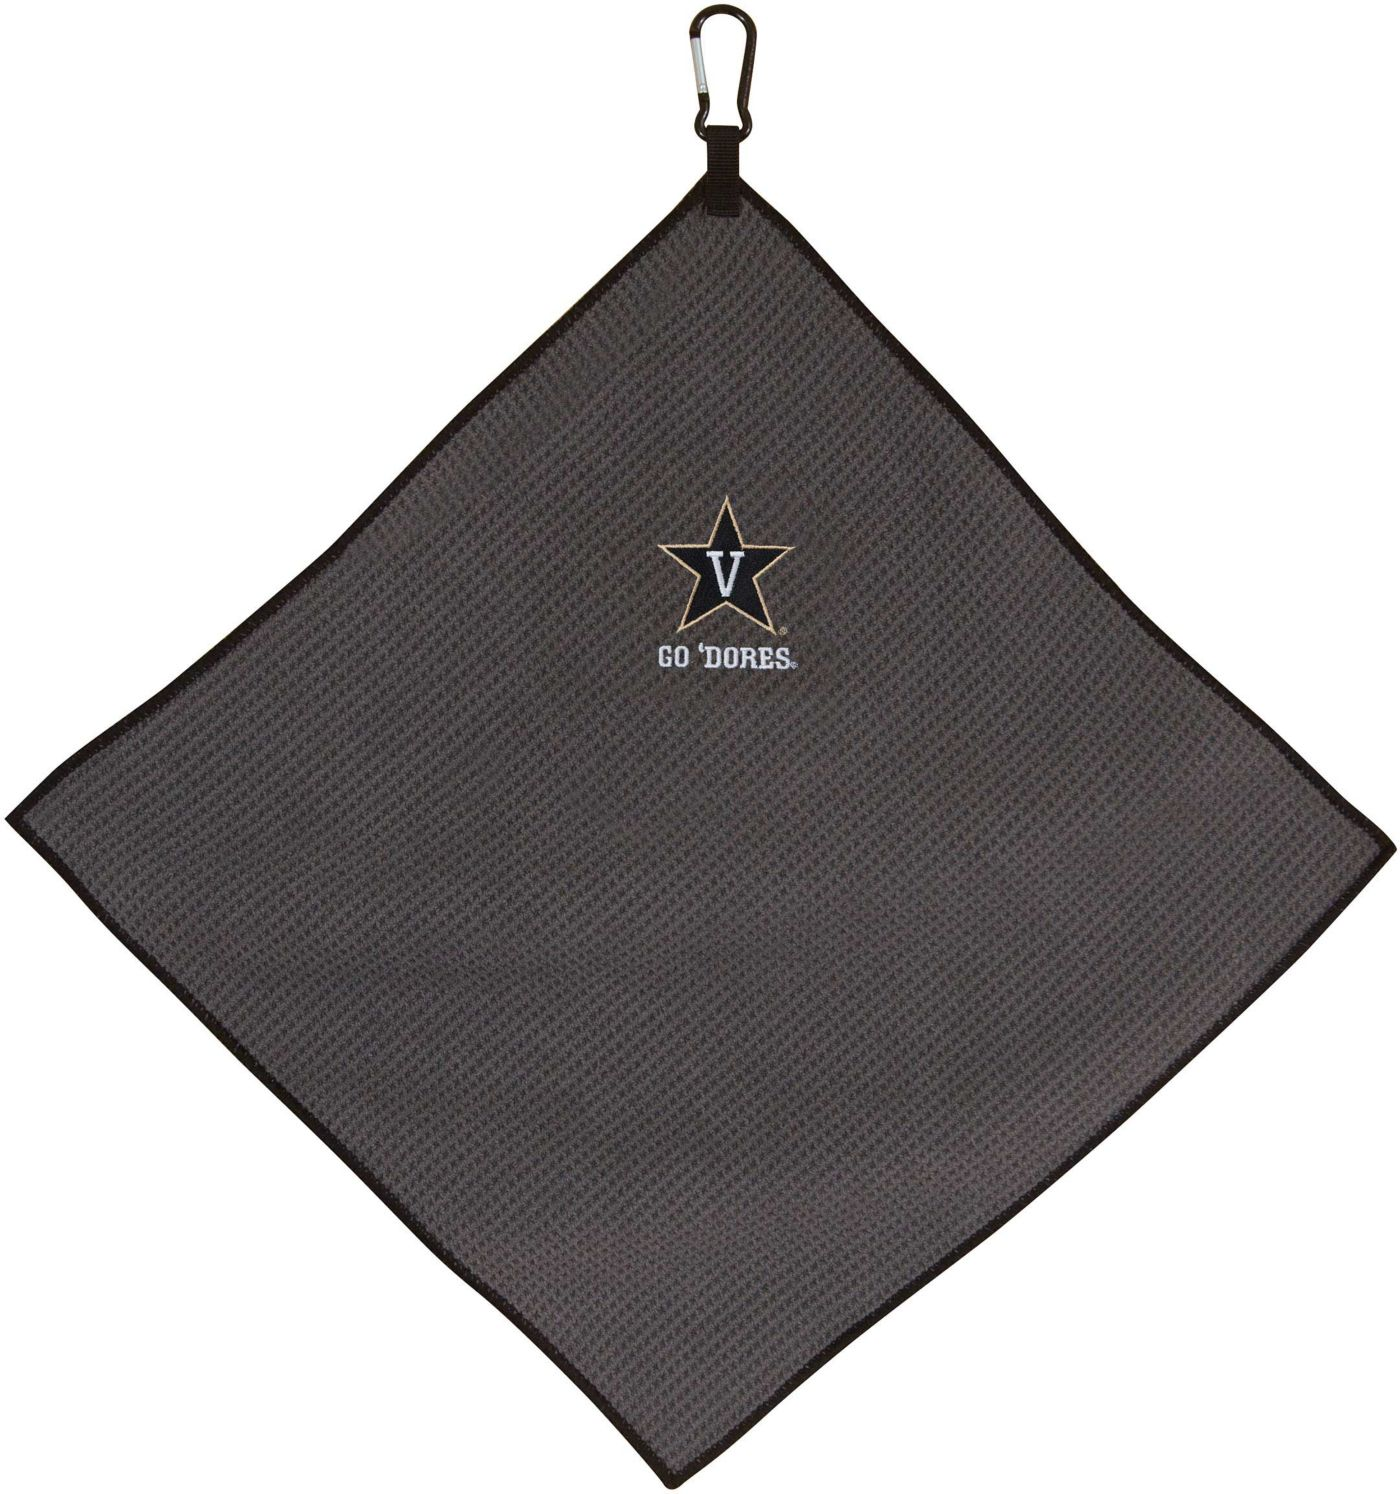 "Team Effort Vanderbilt Commodores 15"" x 15"" Microfiber Golf Towel"